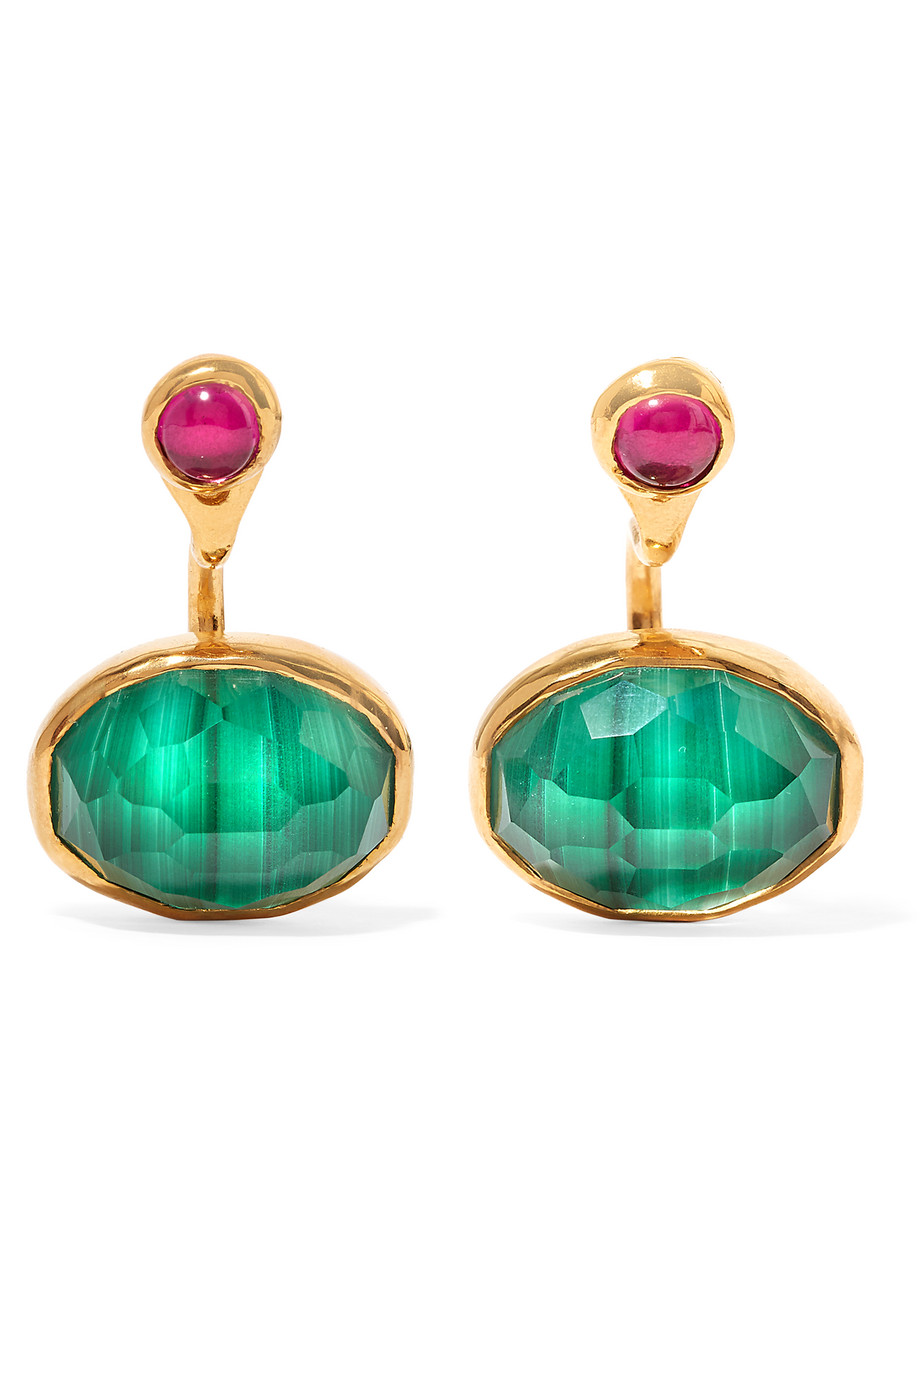 Gold-Plated, Malachite and Zircon Earrings, Green/Gold, Women's